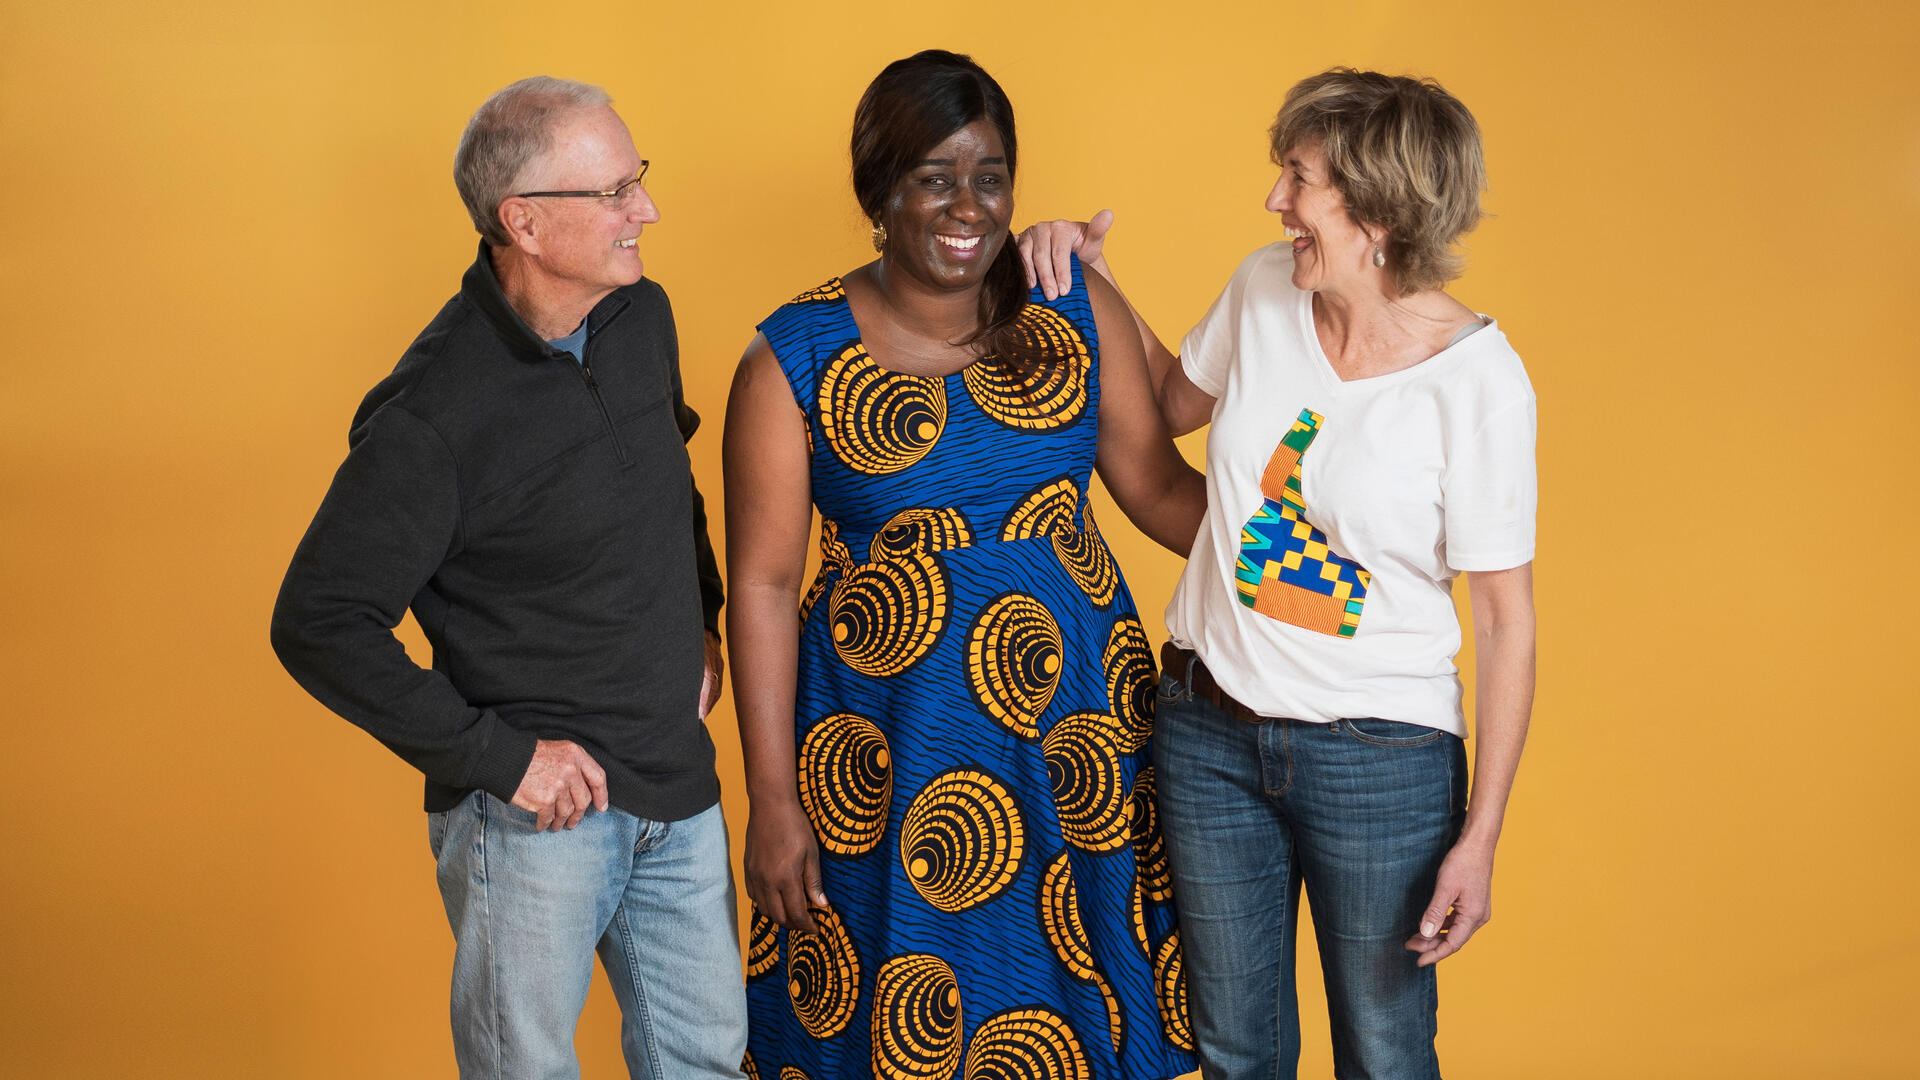 Jacqueline Uwumeremyi, center, was resettled by the IRC in Boise, Idaho